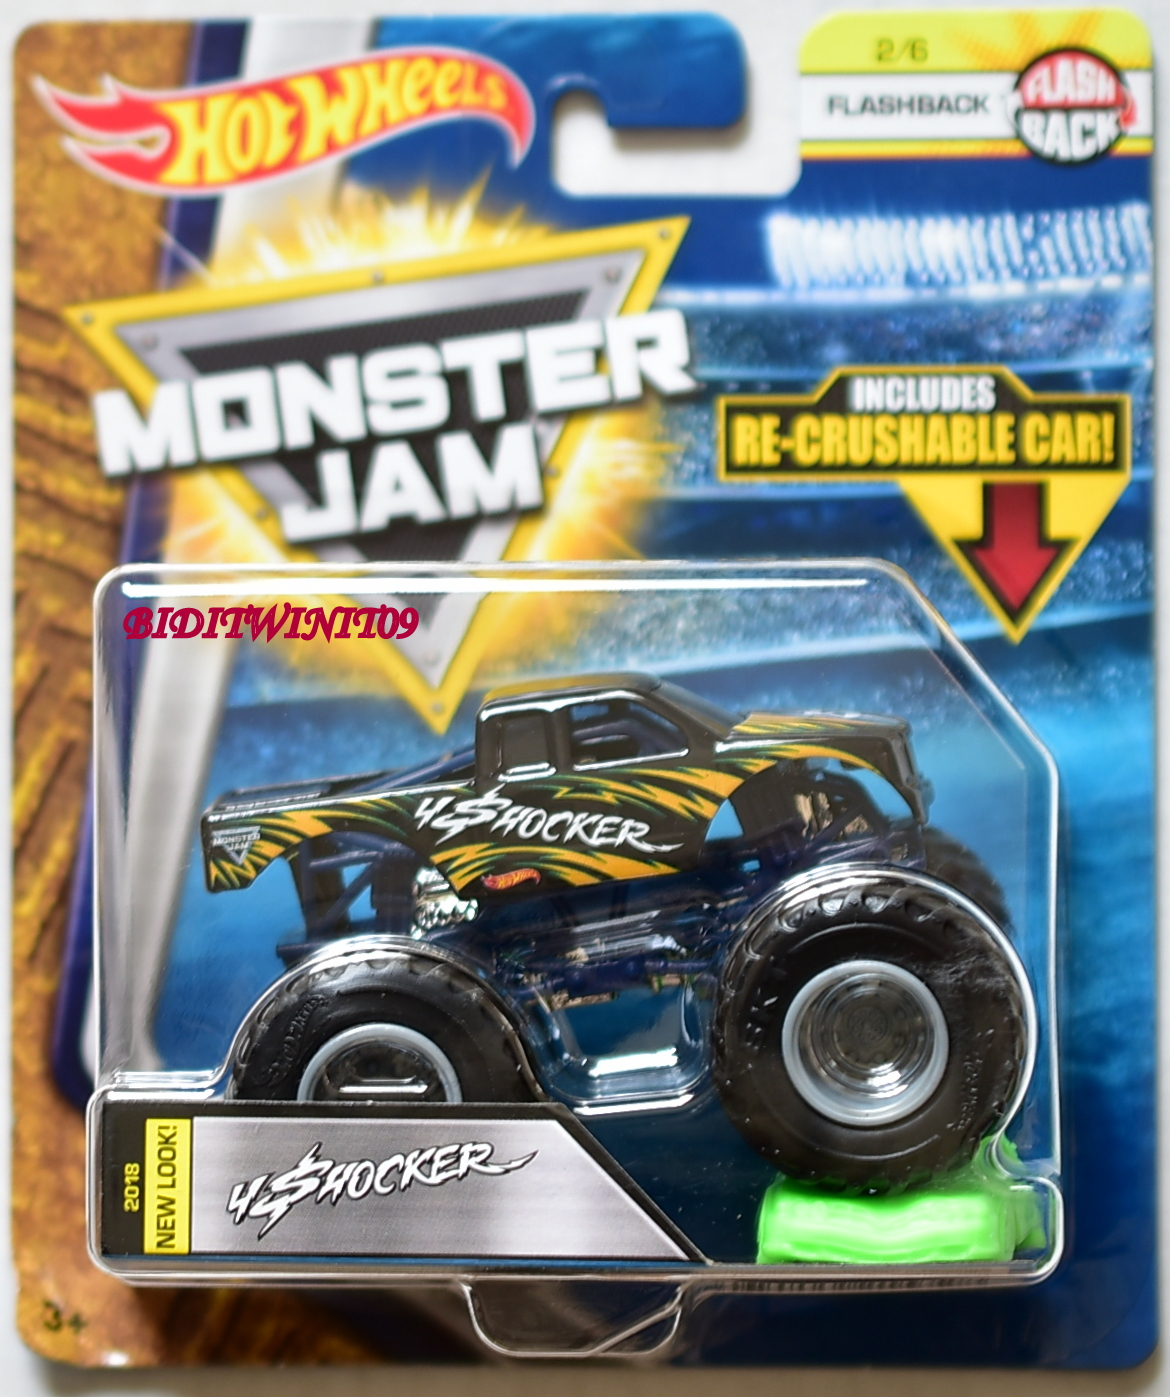 HOT WHEELS 2018 MONSTER JAM FLASHBACK INCLUDES RE-CRUSHABLE CAR SHOCKER #2/6